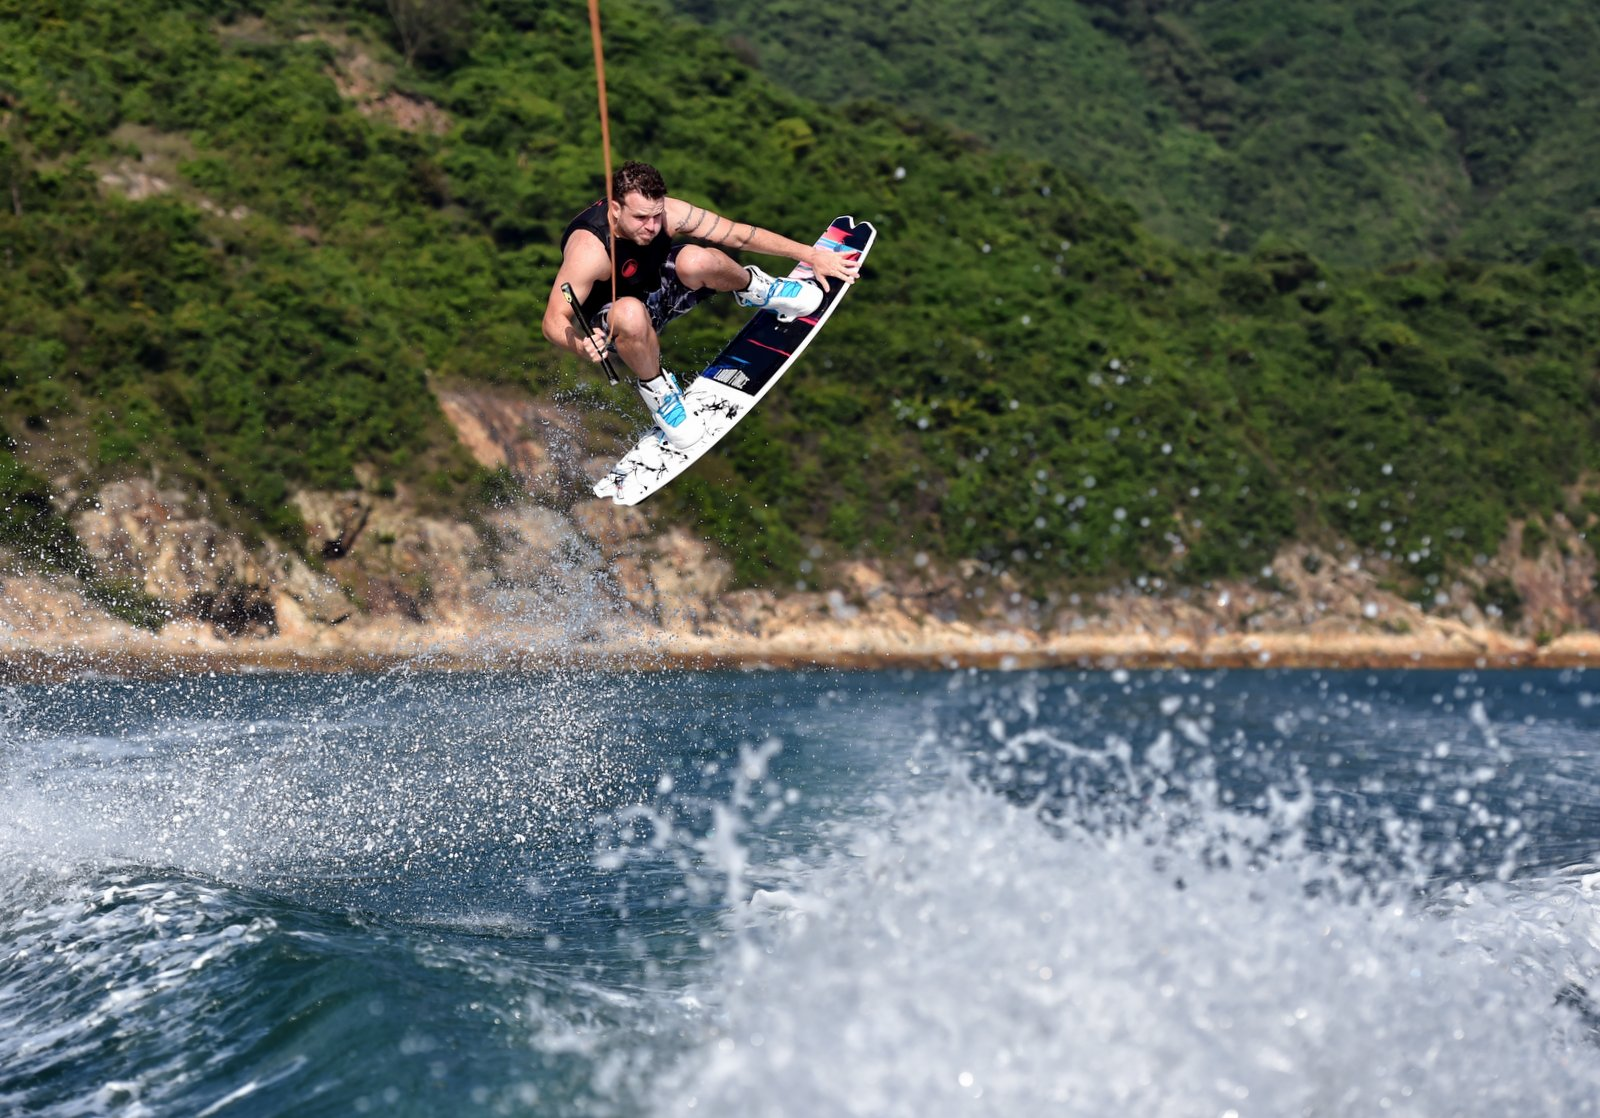 Hong Kong Wake boarding, Motion photography tips and technique example: freezing (all crisp)